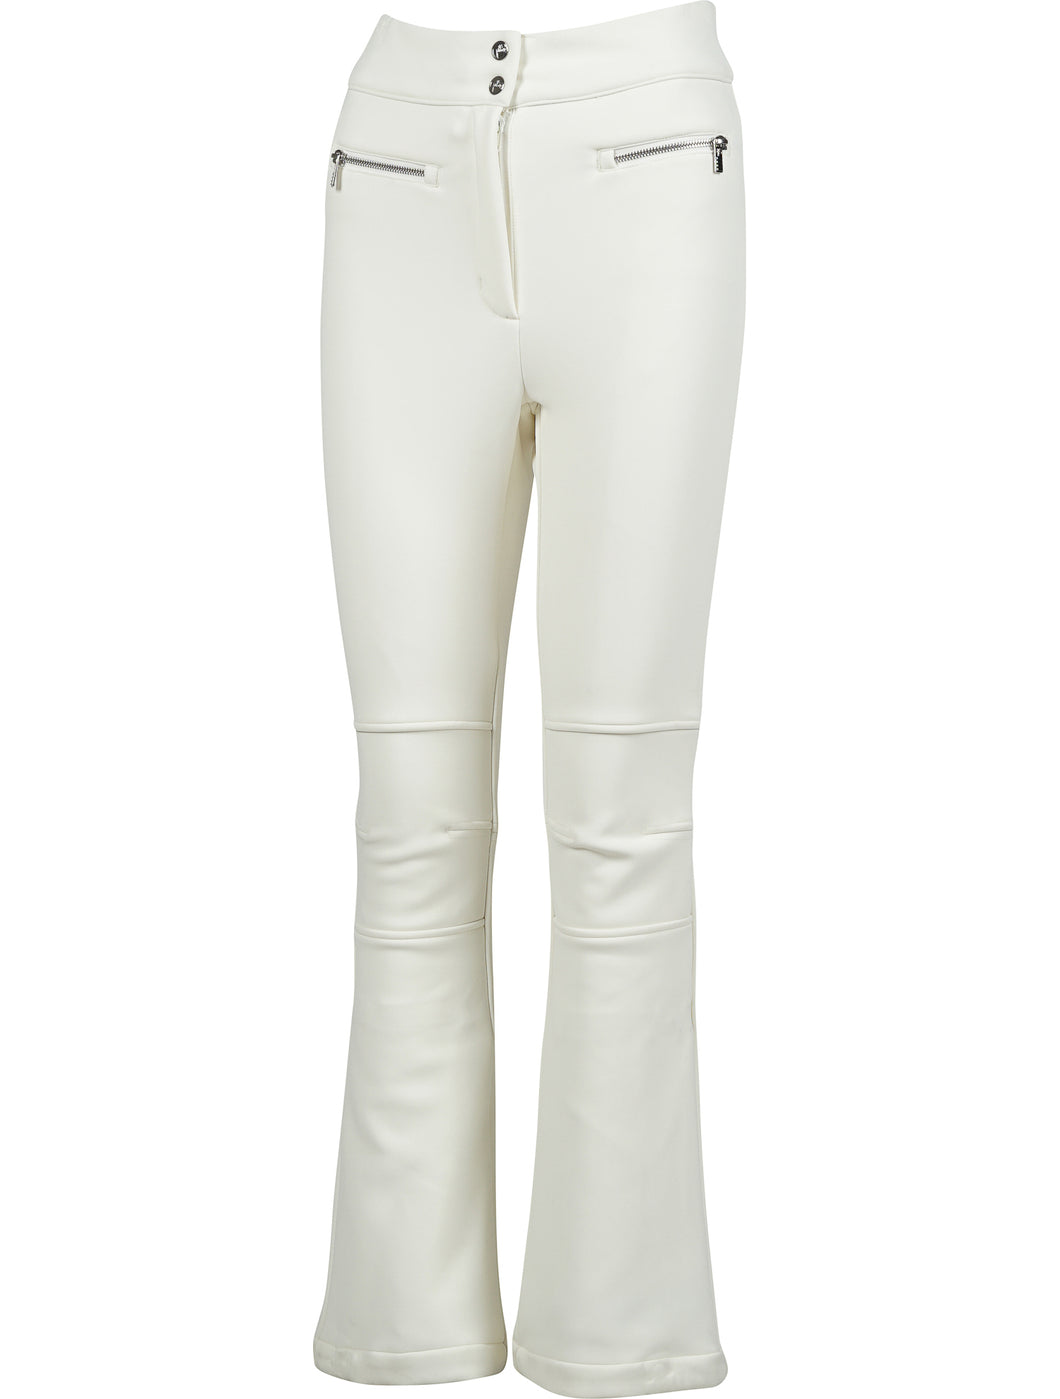 Elancia Fitted Zip Waist Detail pants - White